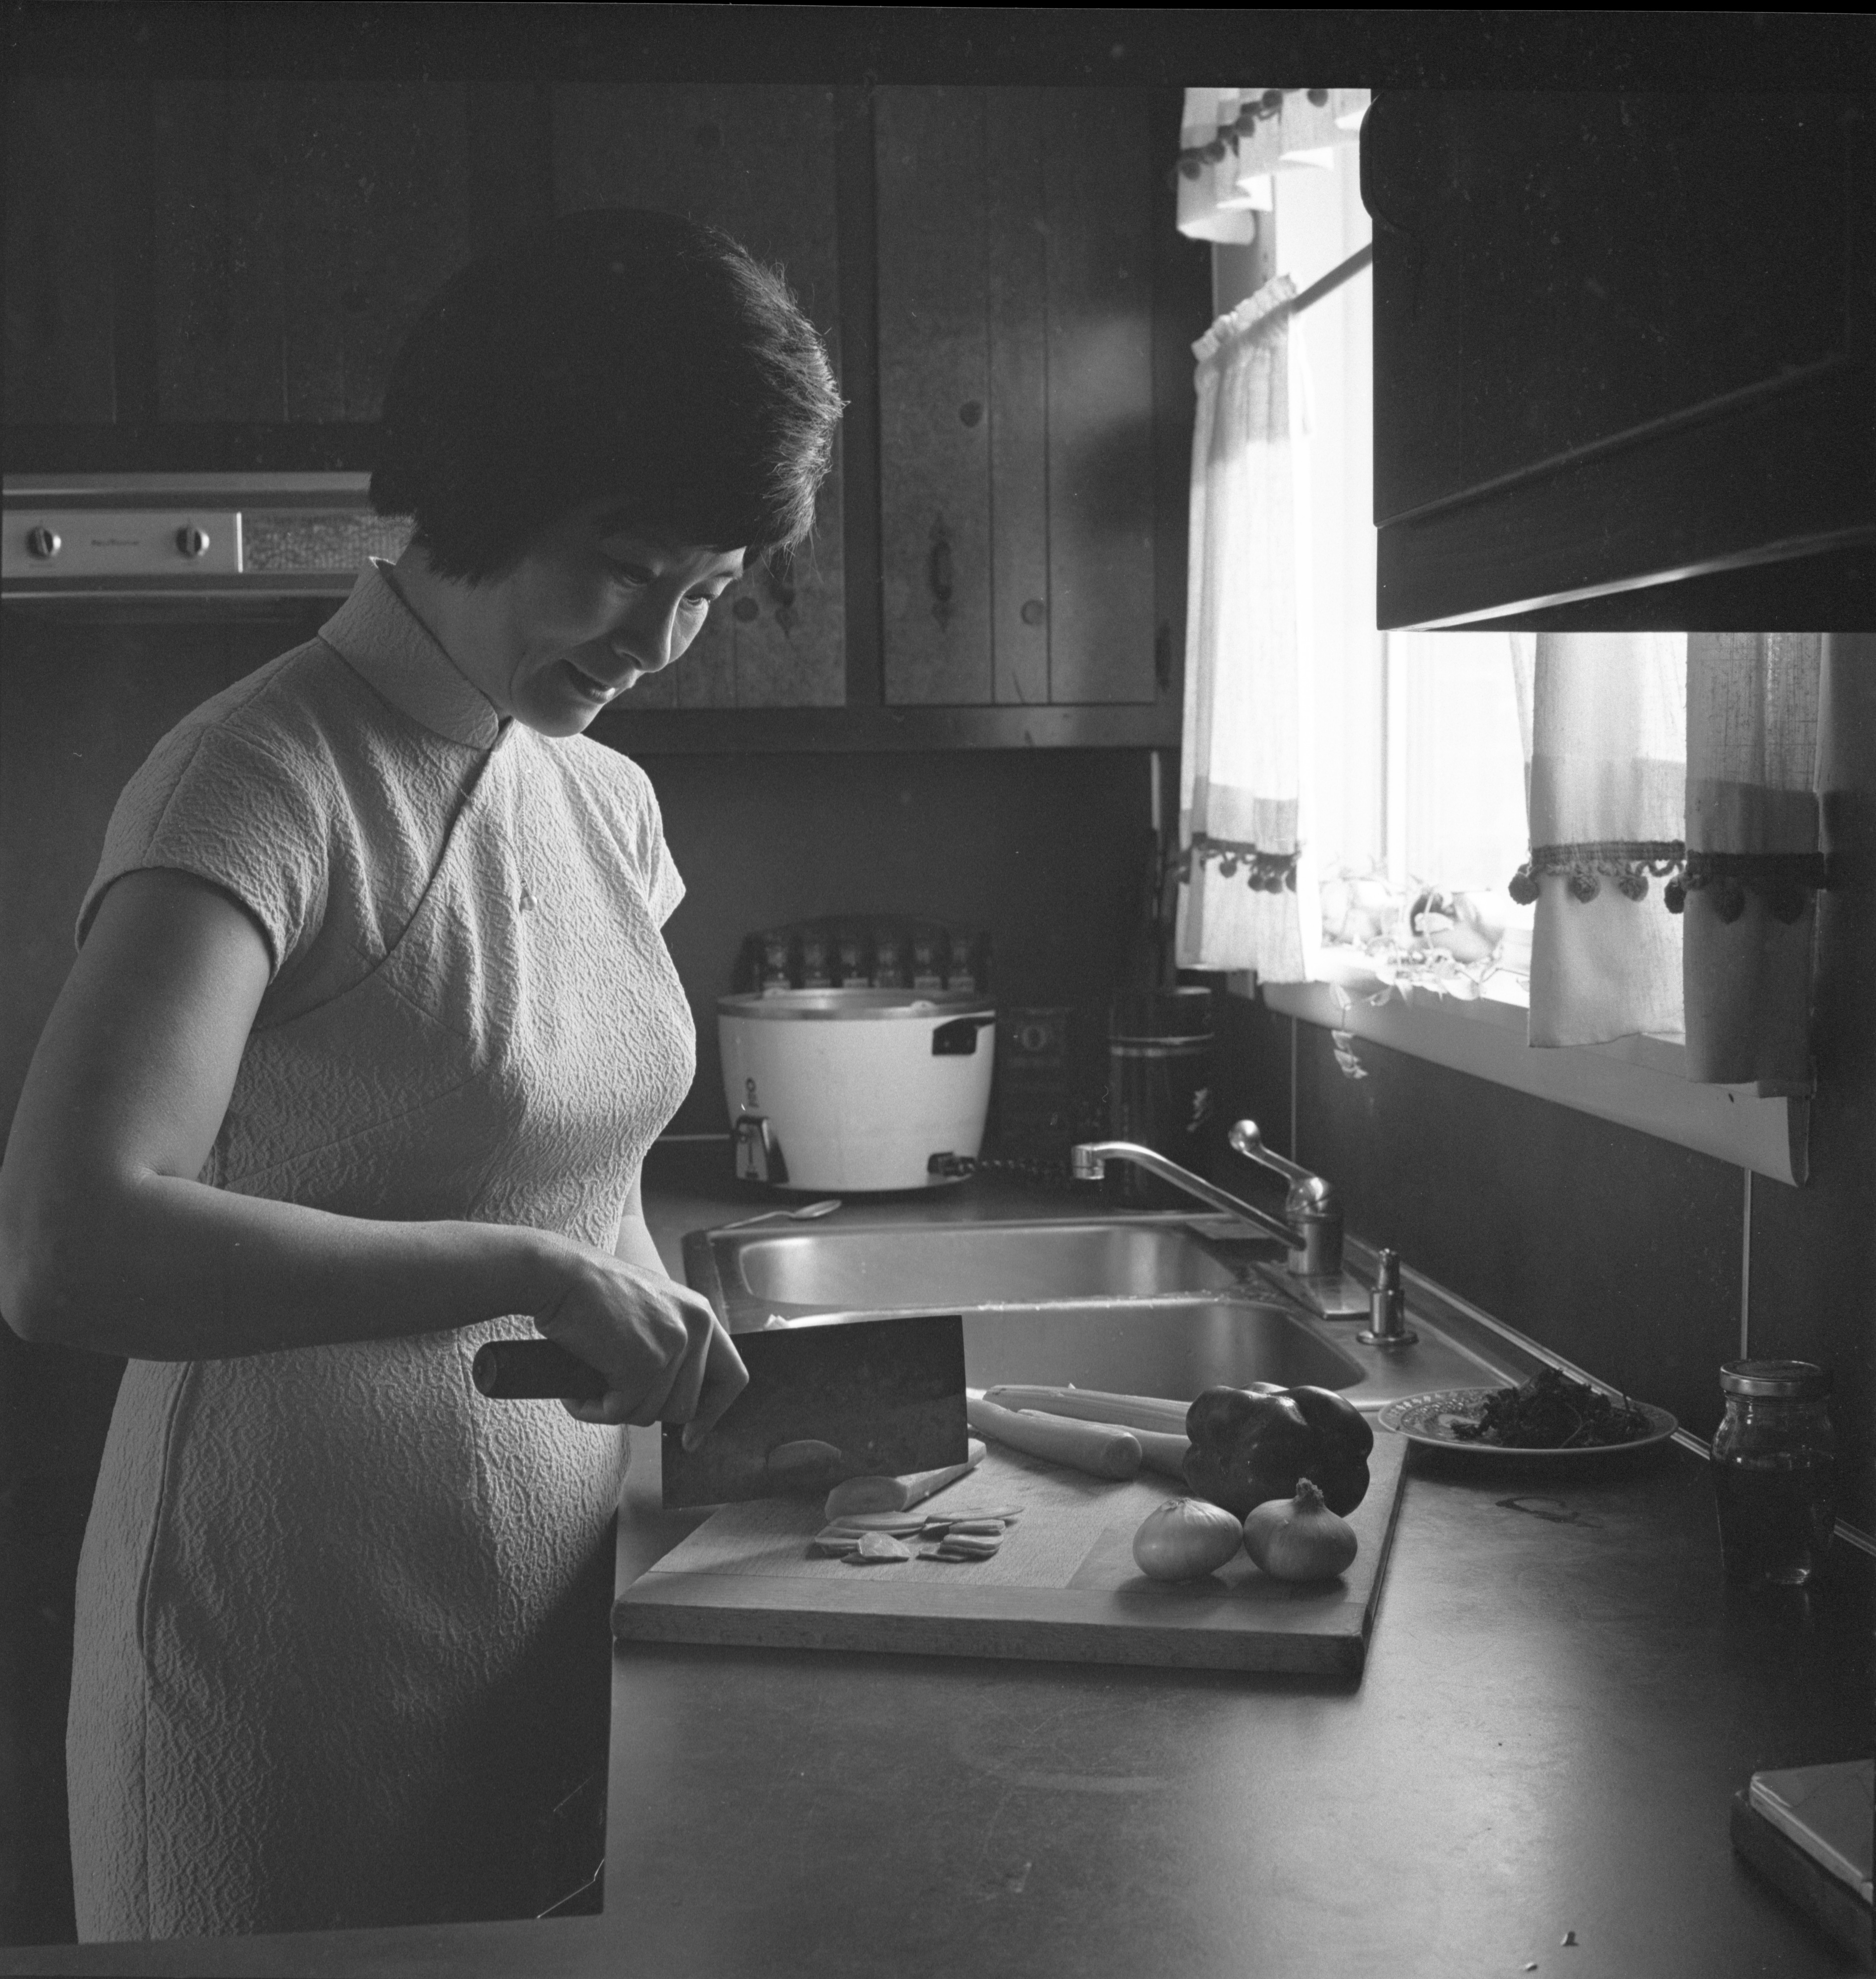 Christine Liu Demonstrates Chinese Cooking, June 1970 image